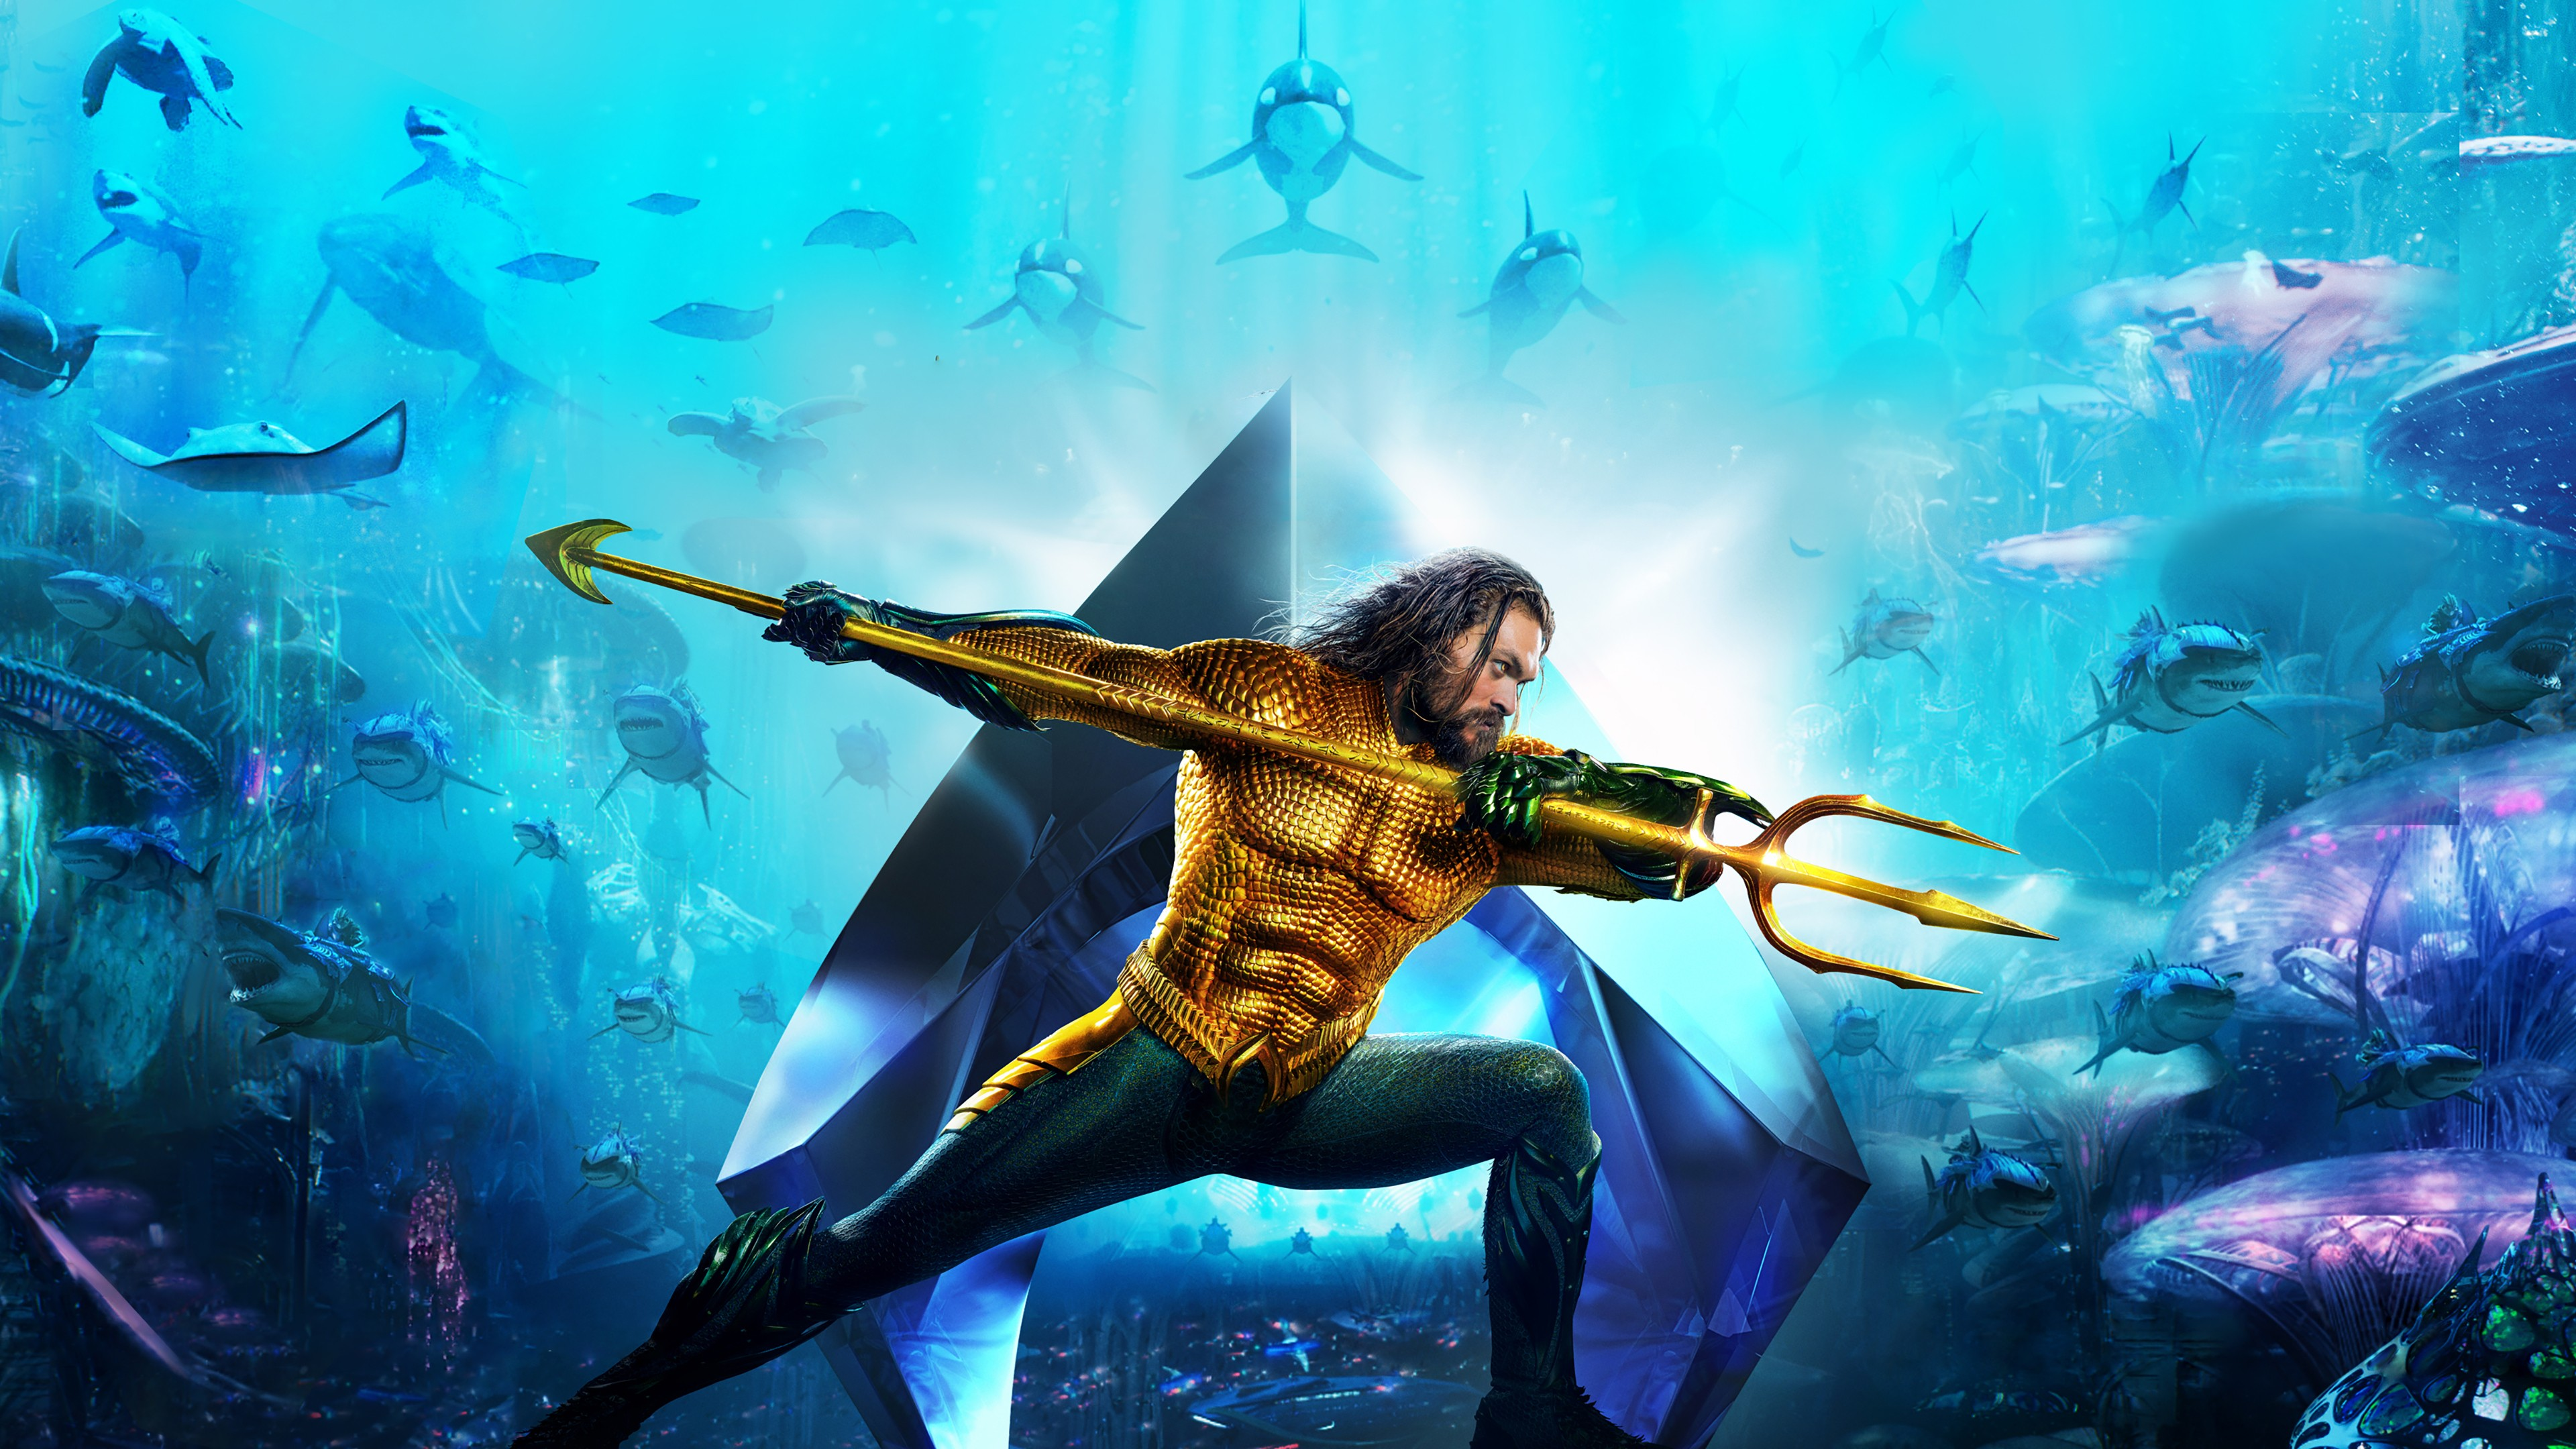 Aquaman 4K Movie HD Wallpaper for Desktop